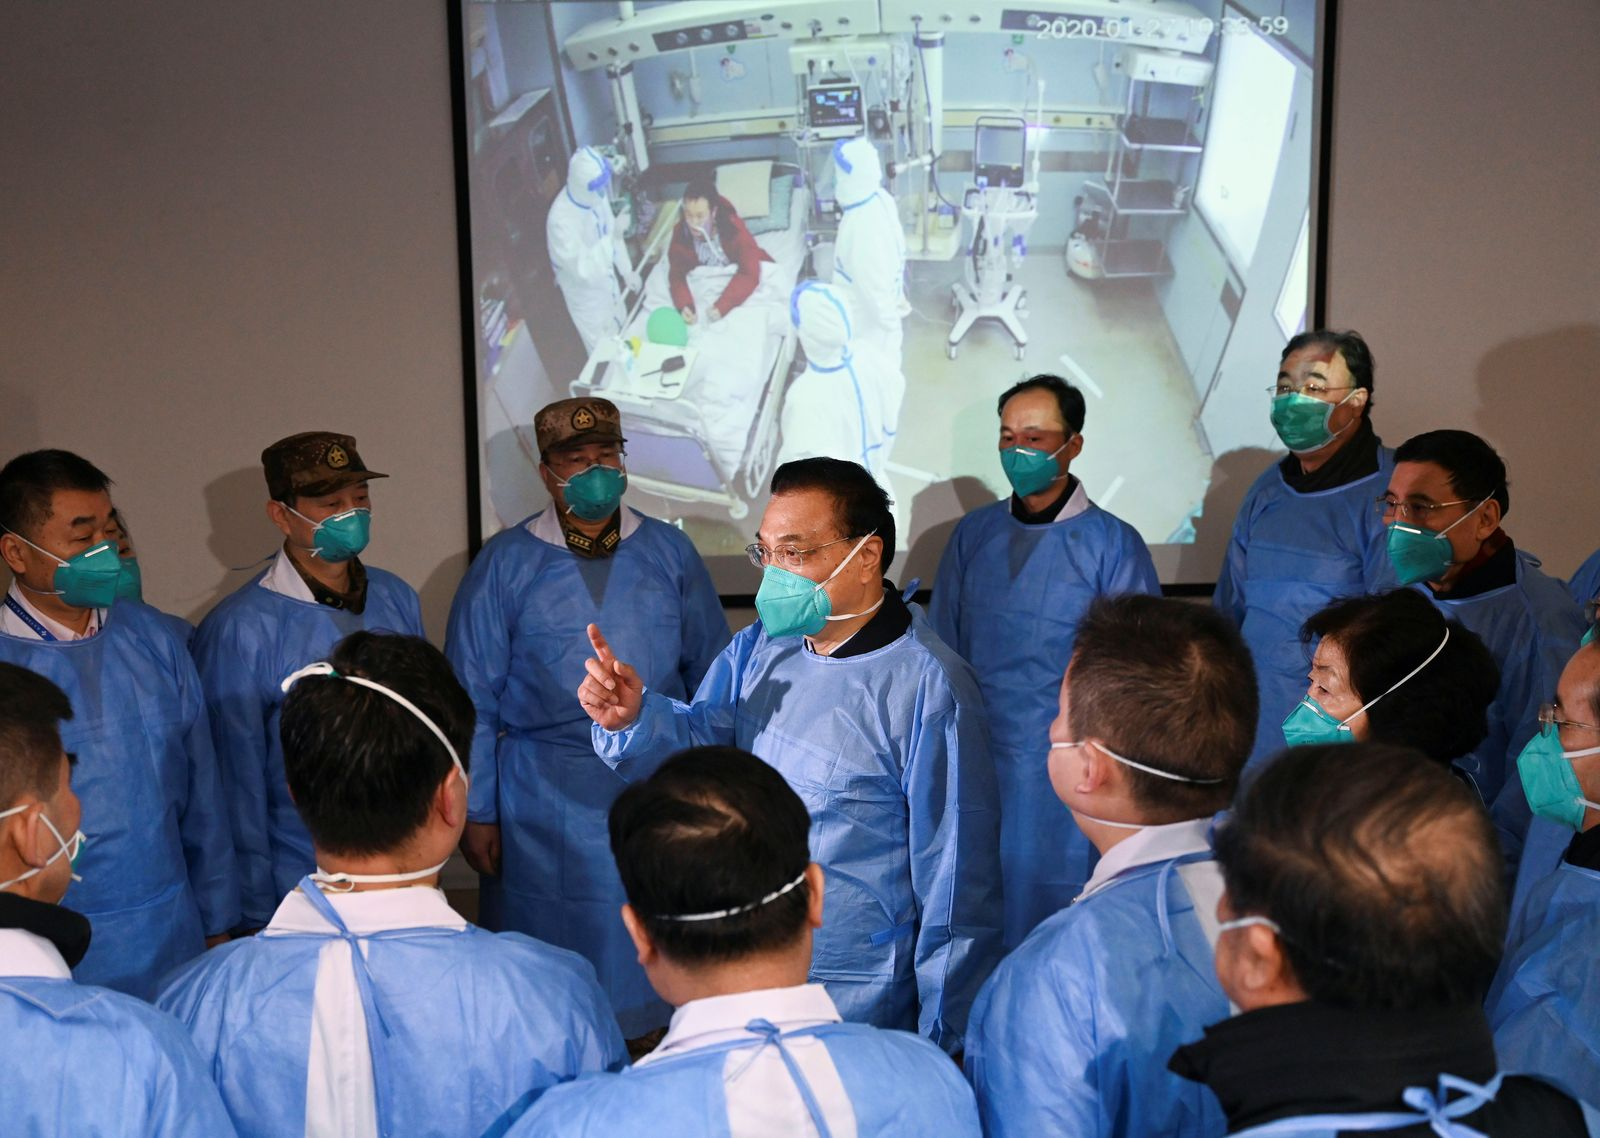 Chinese Premier Li Keqiang wearing a mask and protective suit speaks to medical workers as he visits the Jinyintan hospital where the patients of the new coronavirus are being treated following the outbreak, in Wuhan